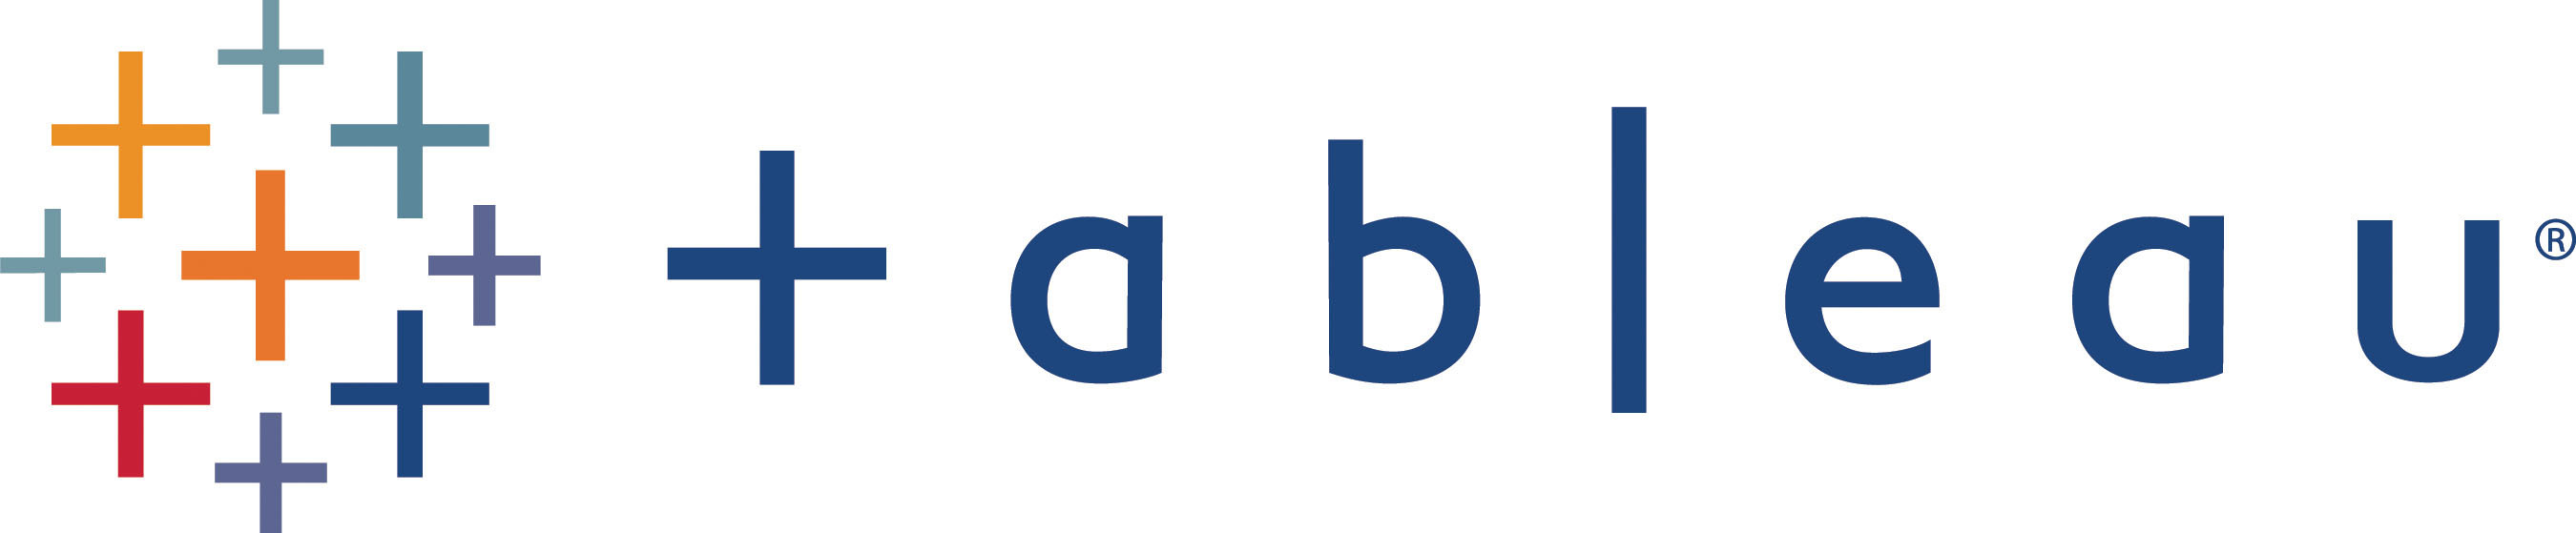 Tableau Reports First Quarter 2016 Financial Results